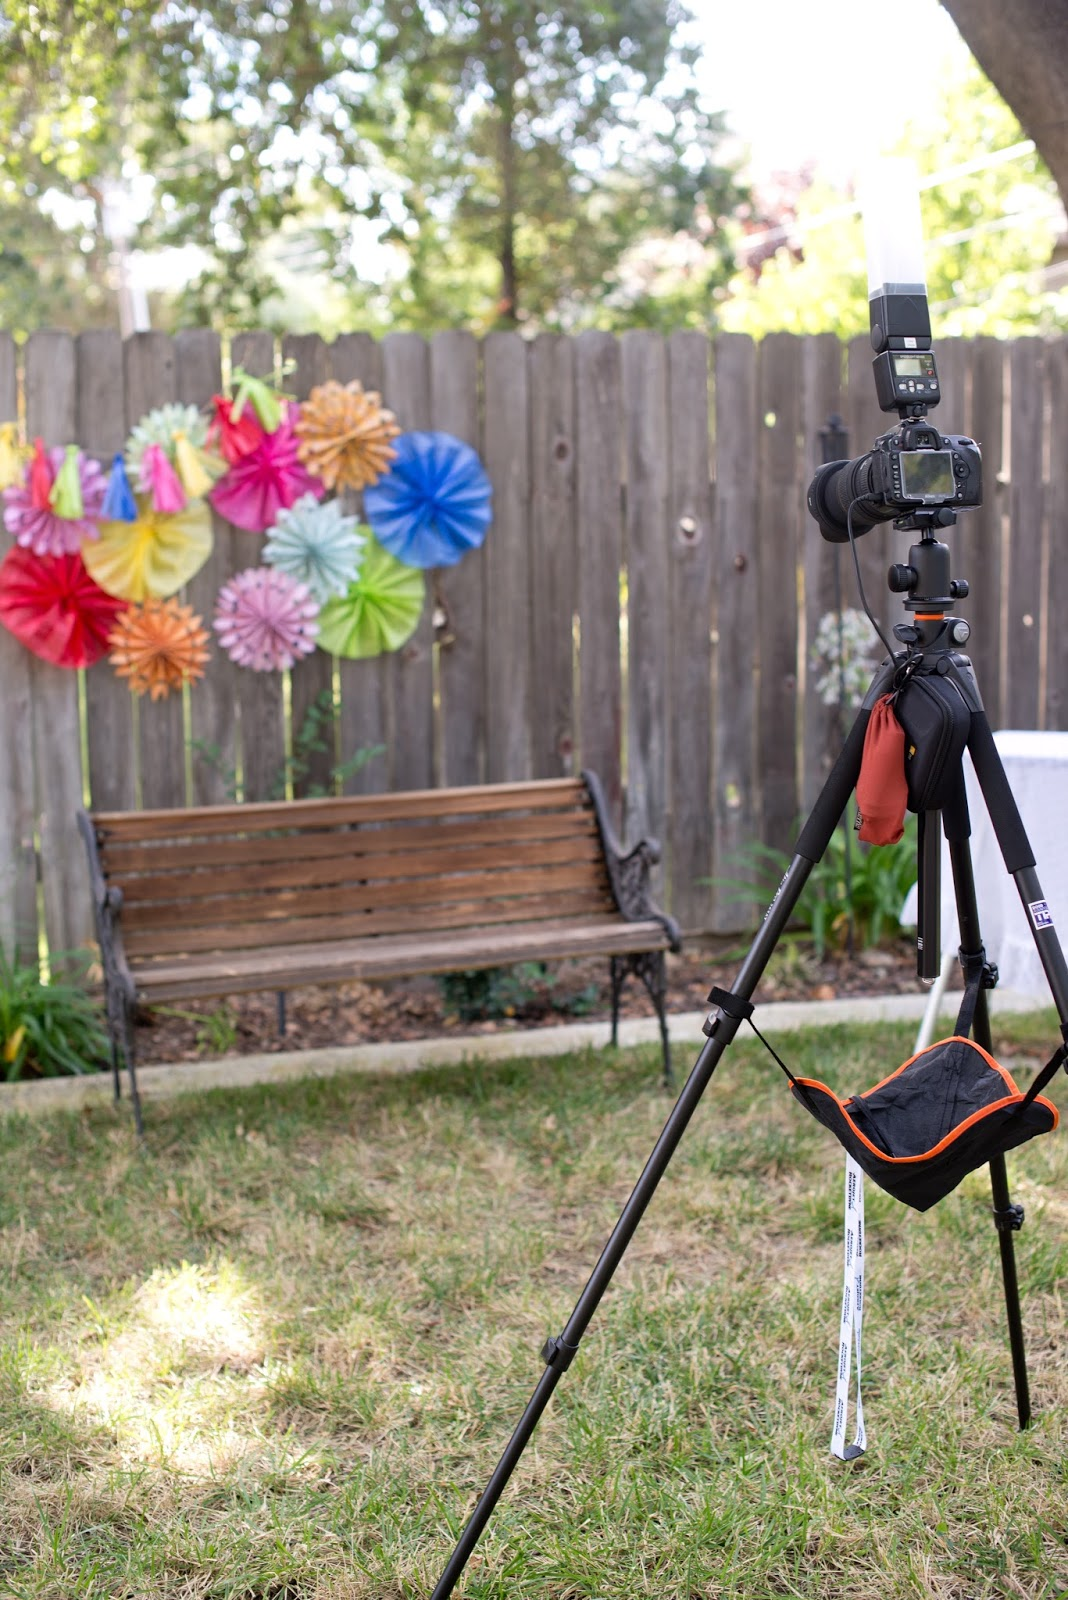 Domestic Fashionista: DIY Photo Booth Using Your DSLR Camera